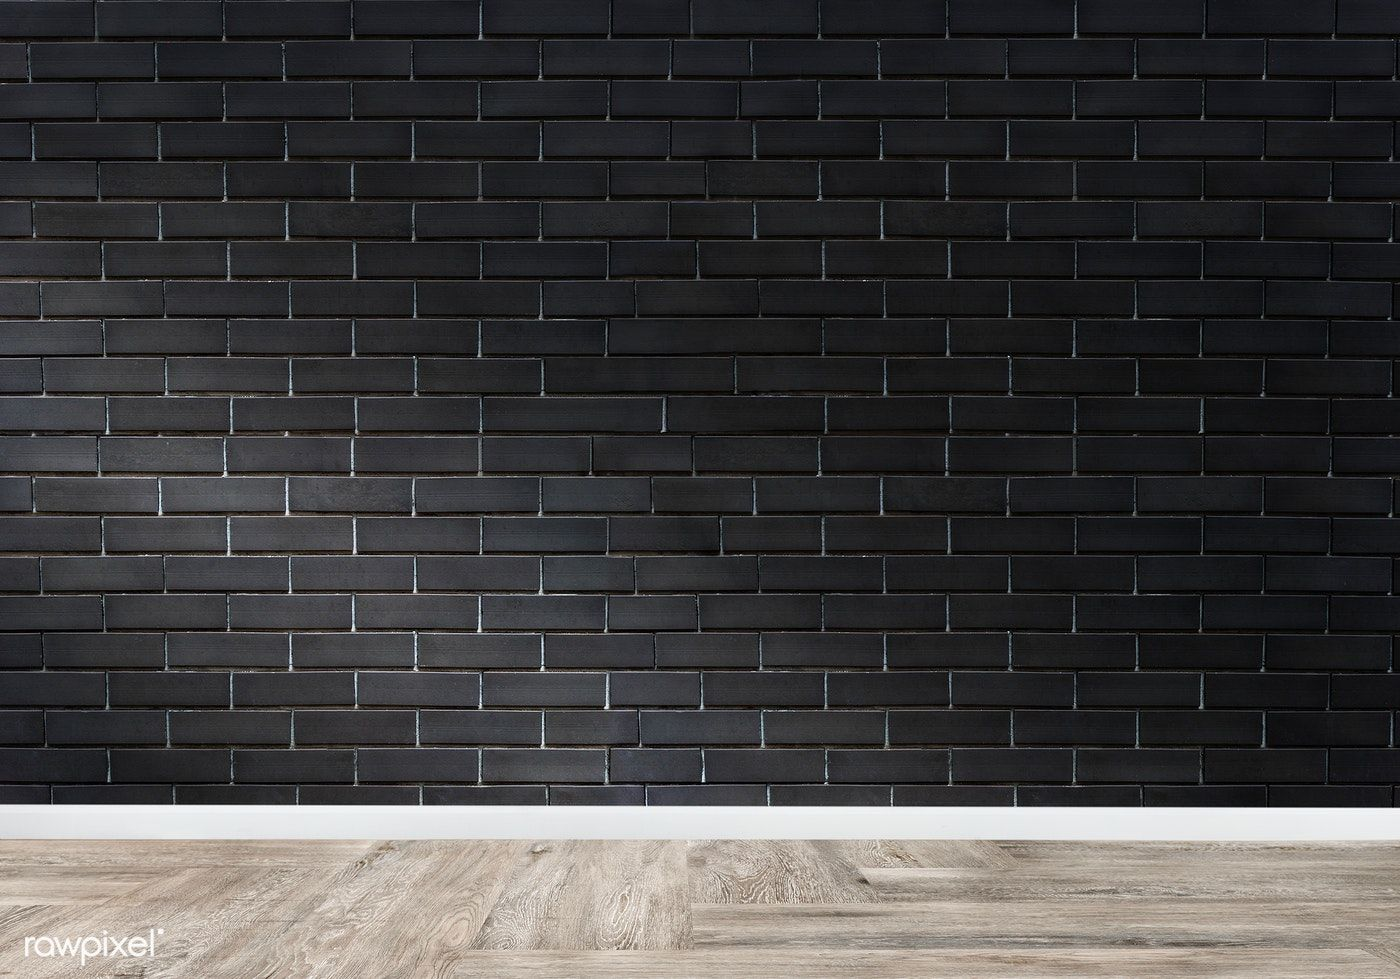 Empty Room With A Brick Wall Mockup Free Image By Rawpixel Com